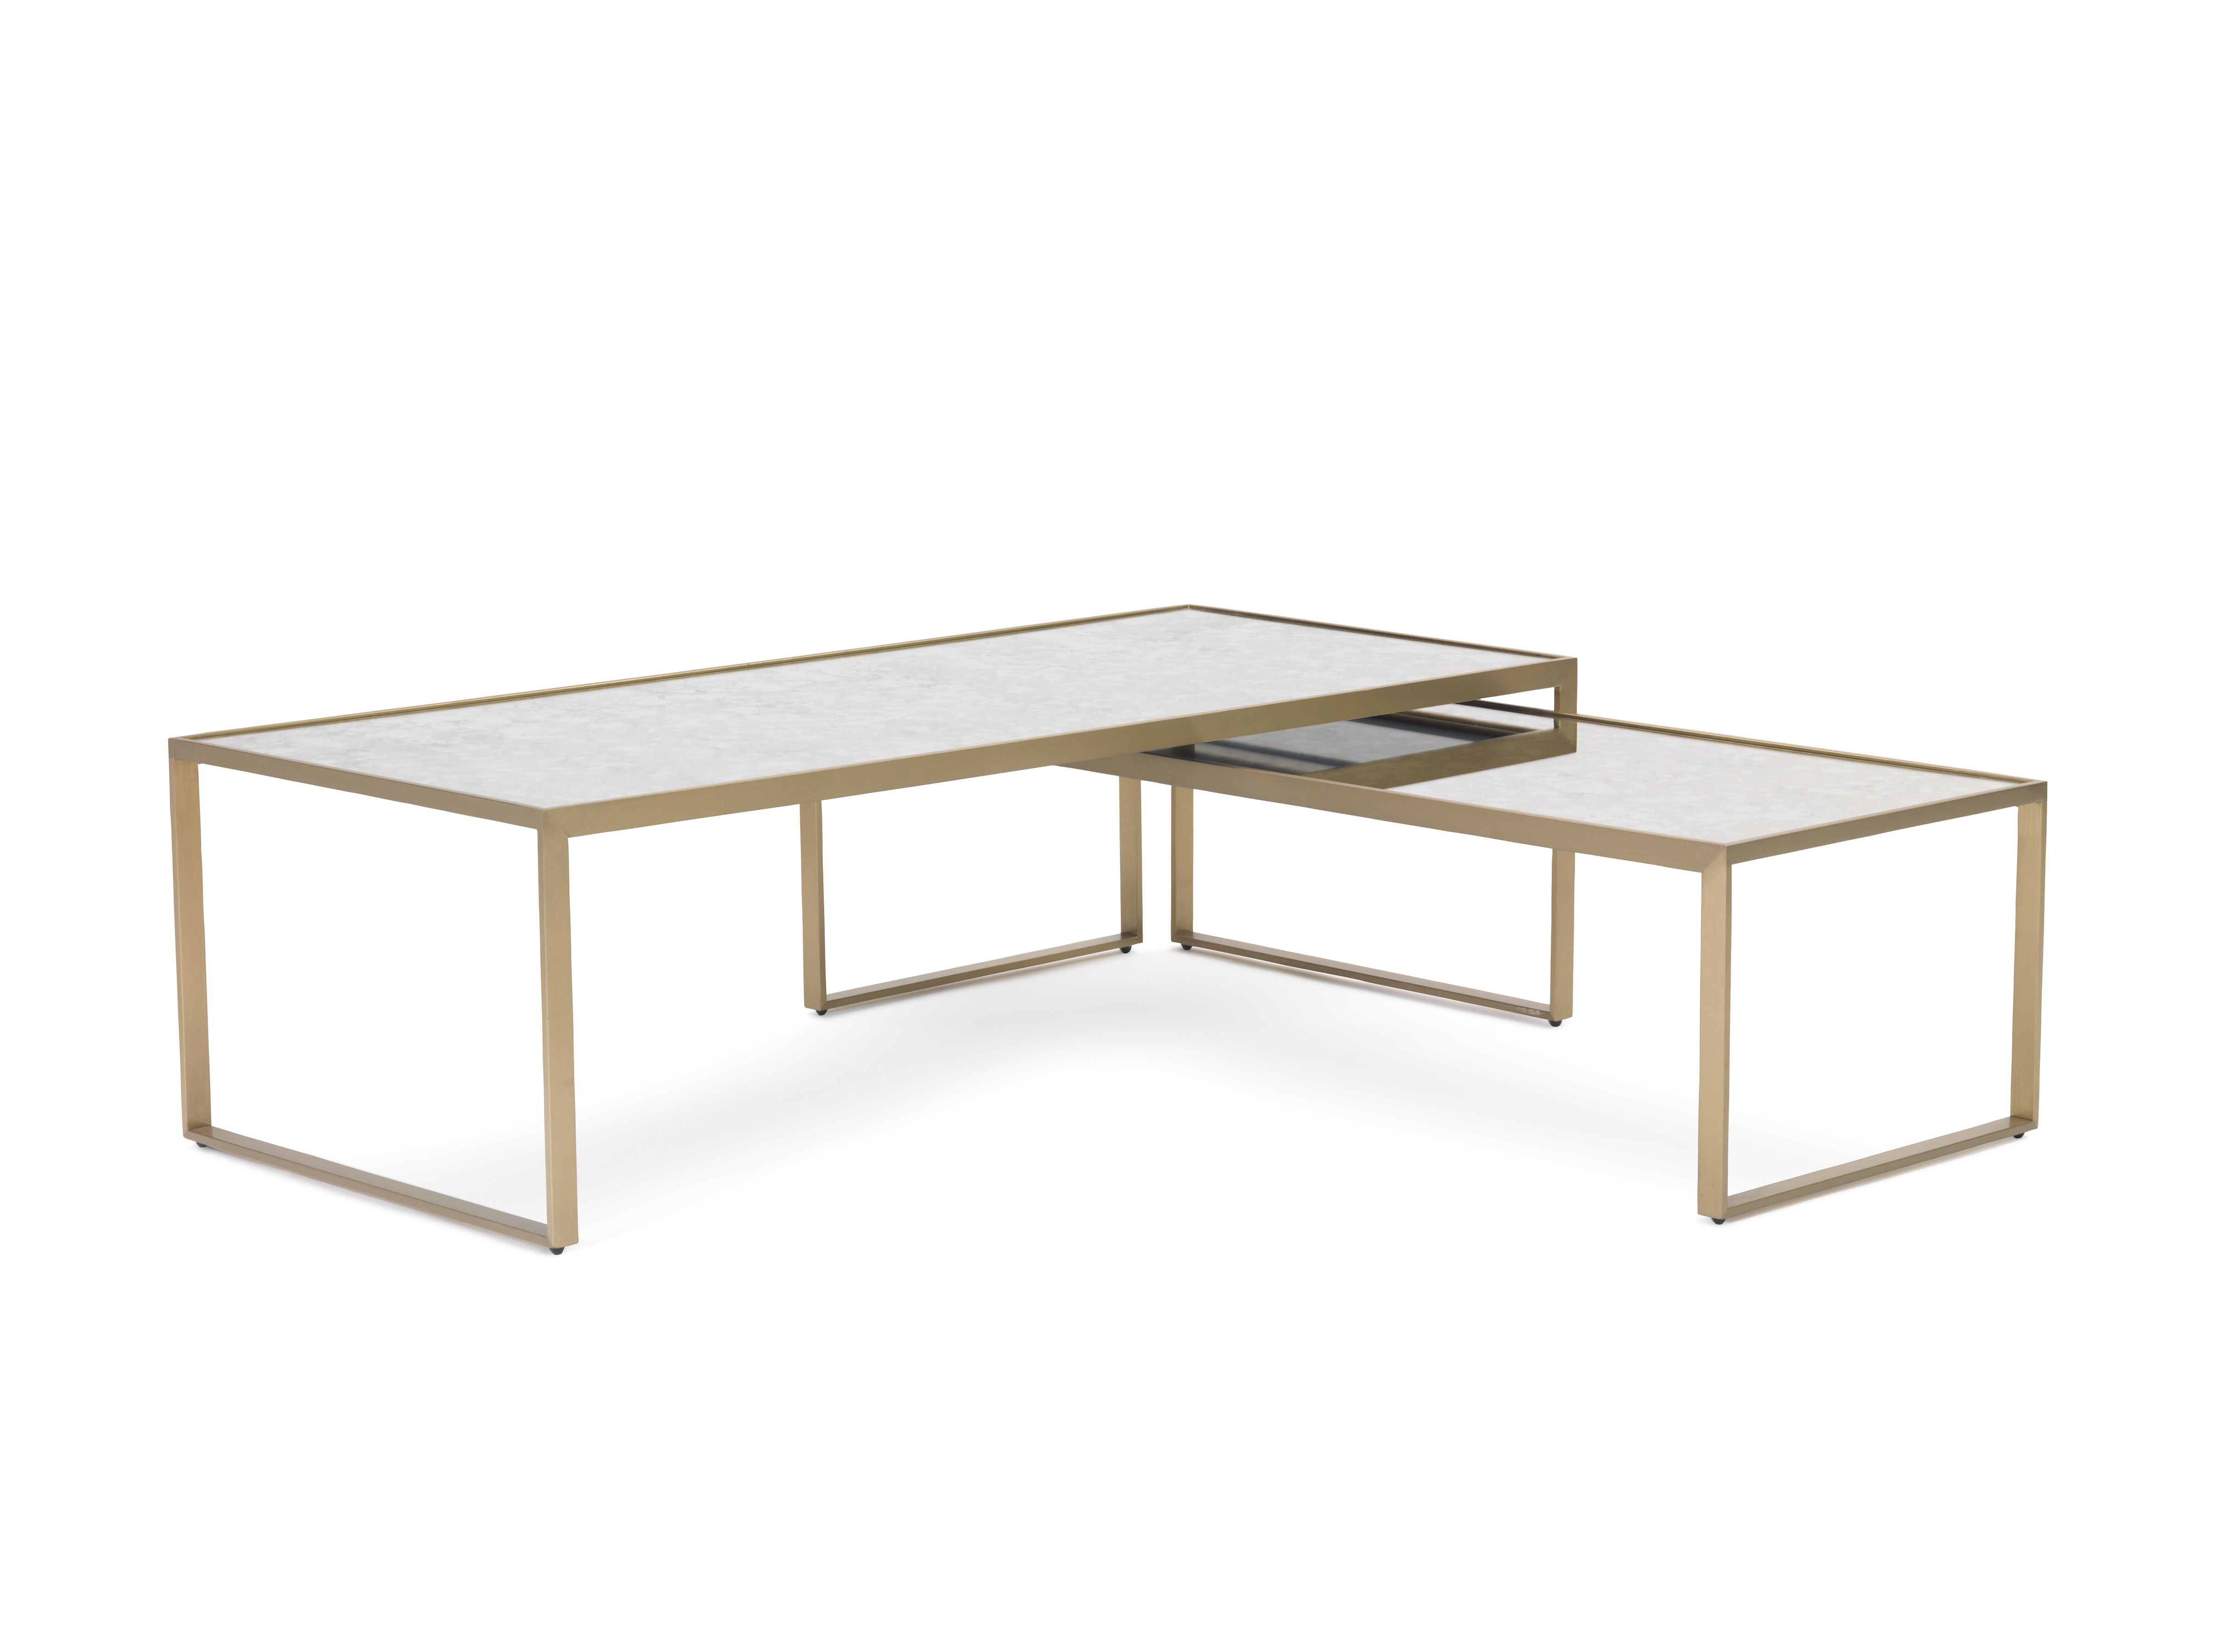 Mitchell Gold Bob Williams Montral Astor nesting coffee table